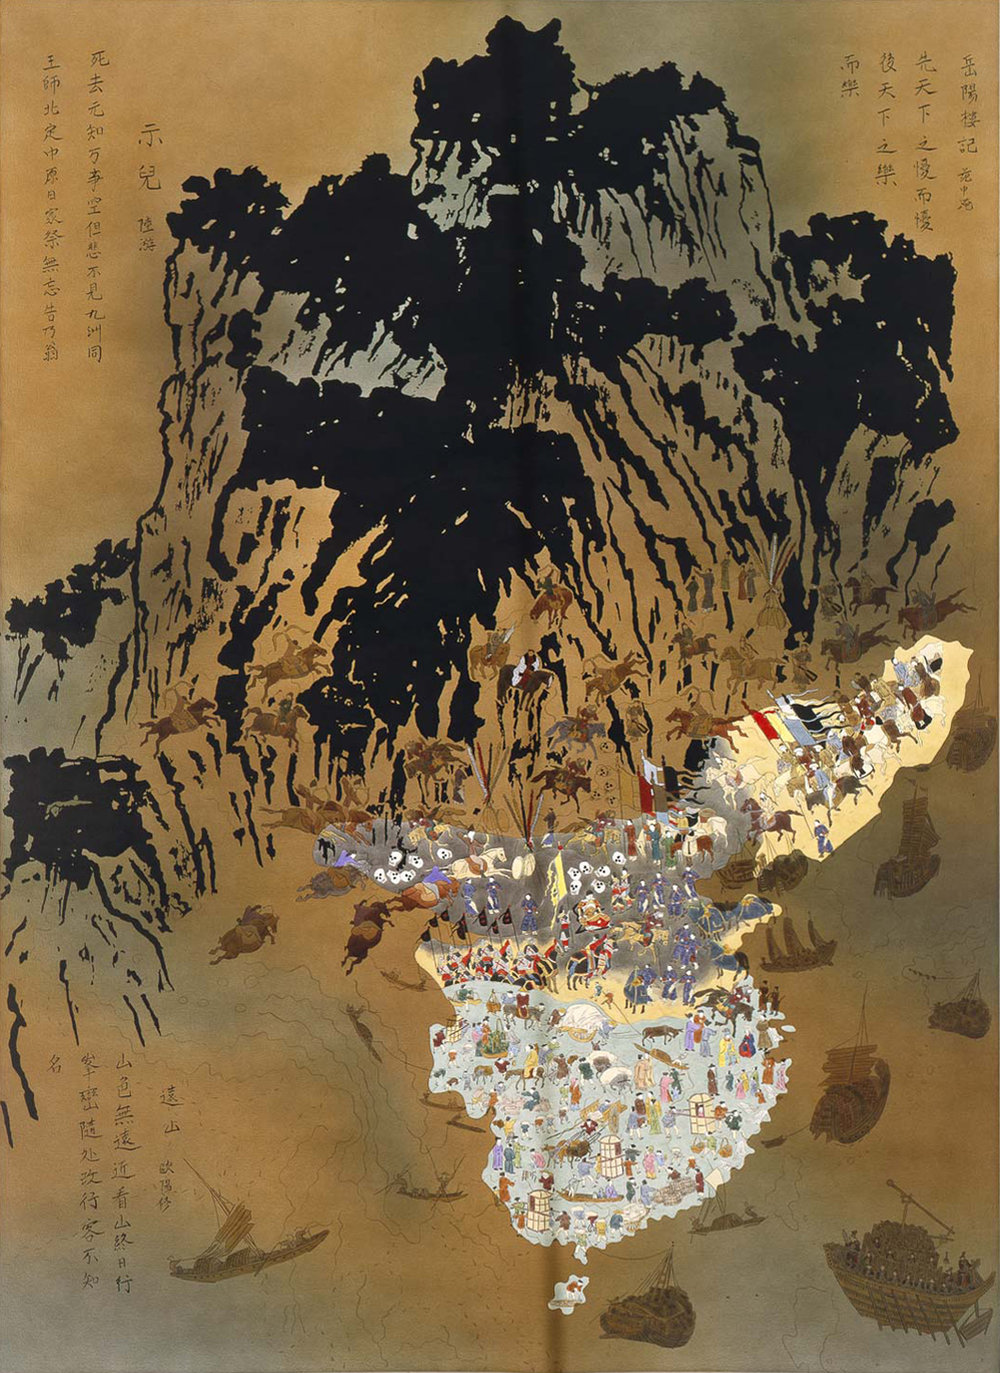 "China V: Sung Dynasty, 960-1279 A.D.  1991-92 • Oil and acrylic ink on canvas • 108"" x 78"